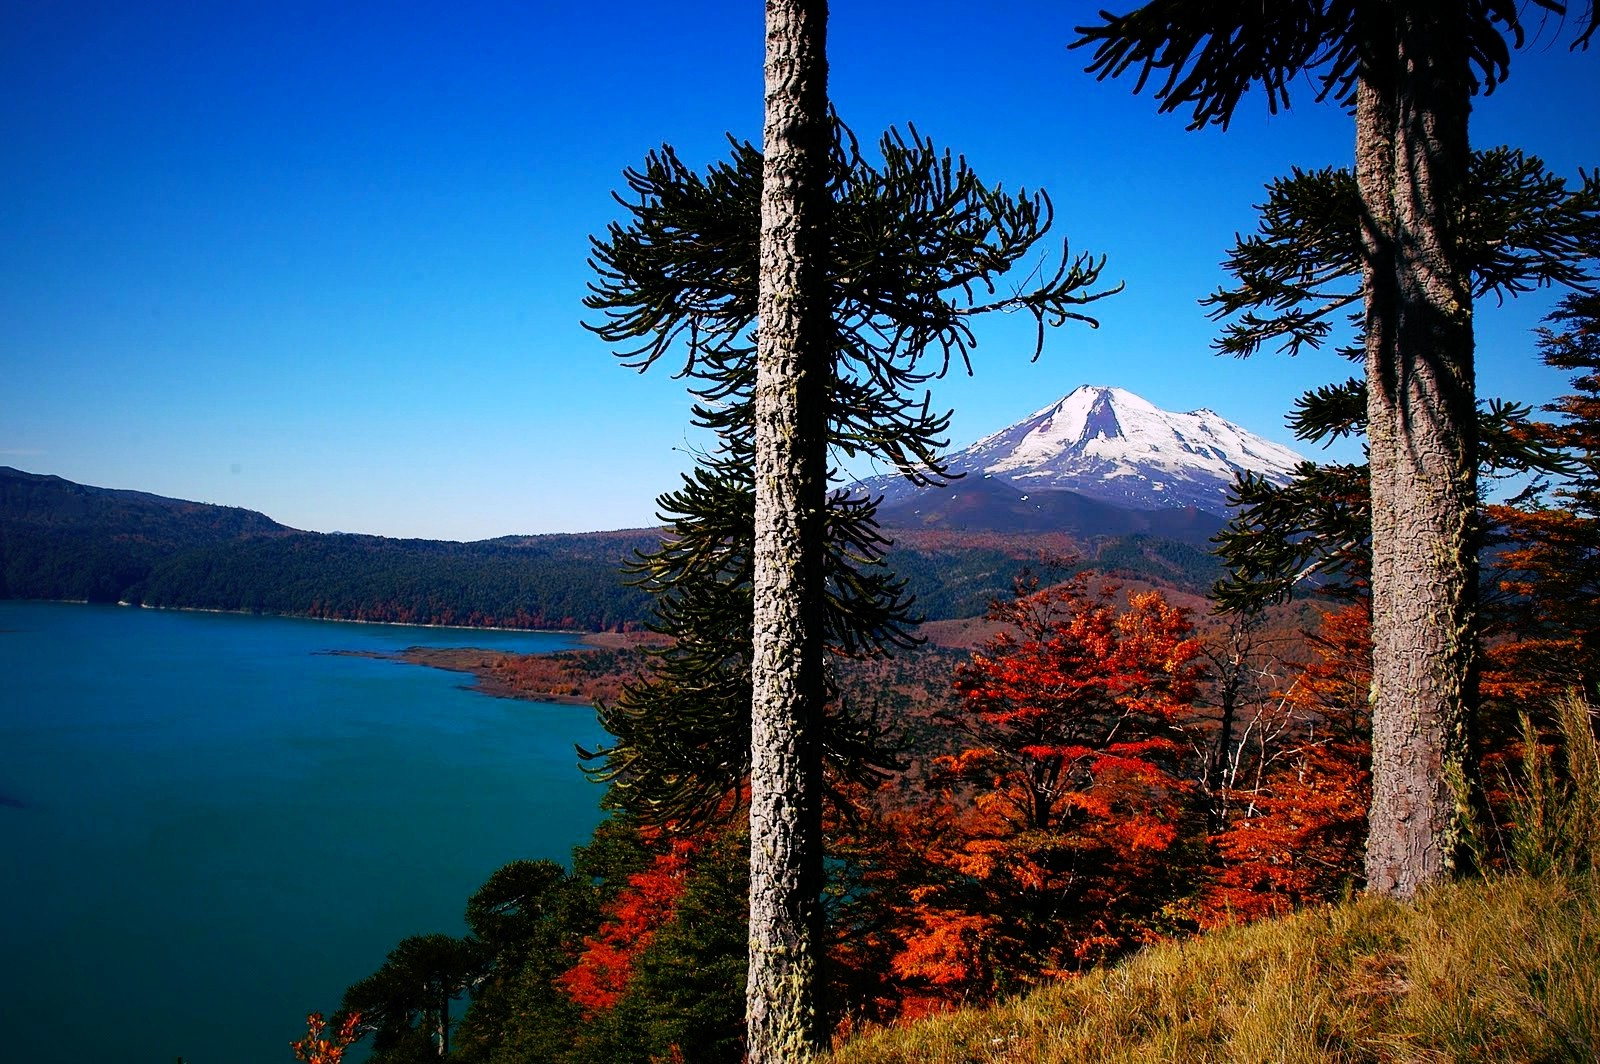 Full Screen Desktop Fall Wallpaper Volcano Chile Forest Lake Fall Snowy Peak Trees